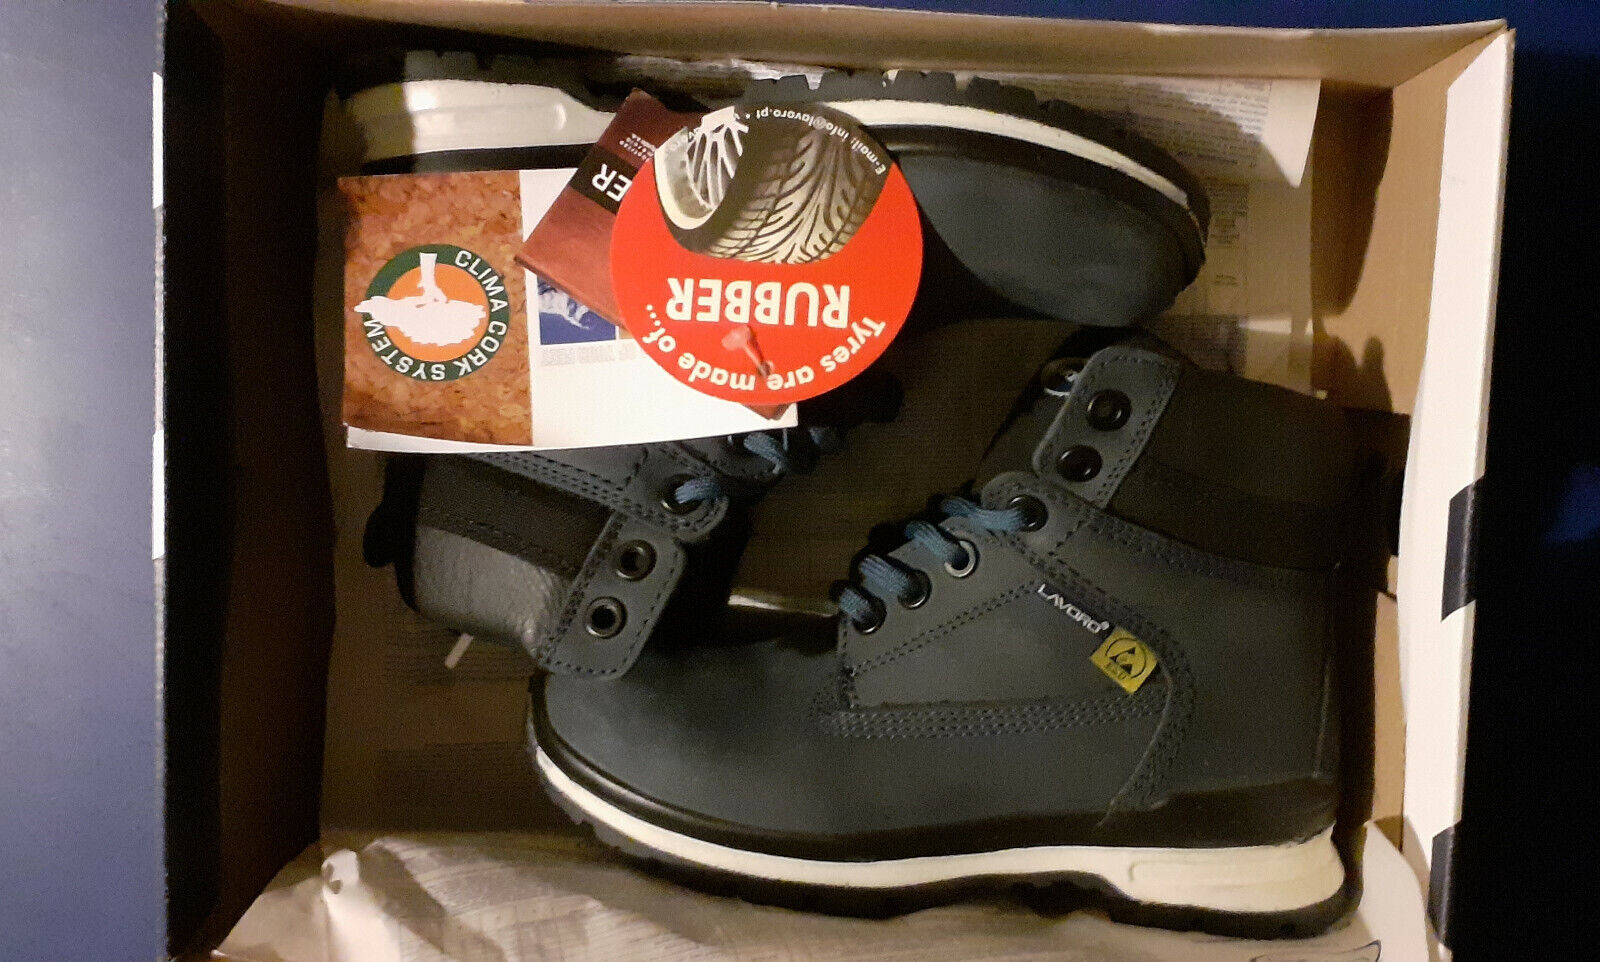 lavoro safety boots [ european size 35]rubber sole blue leather upper